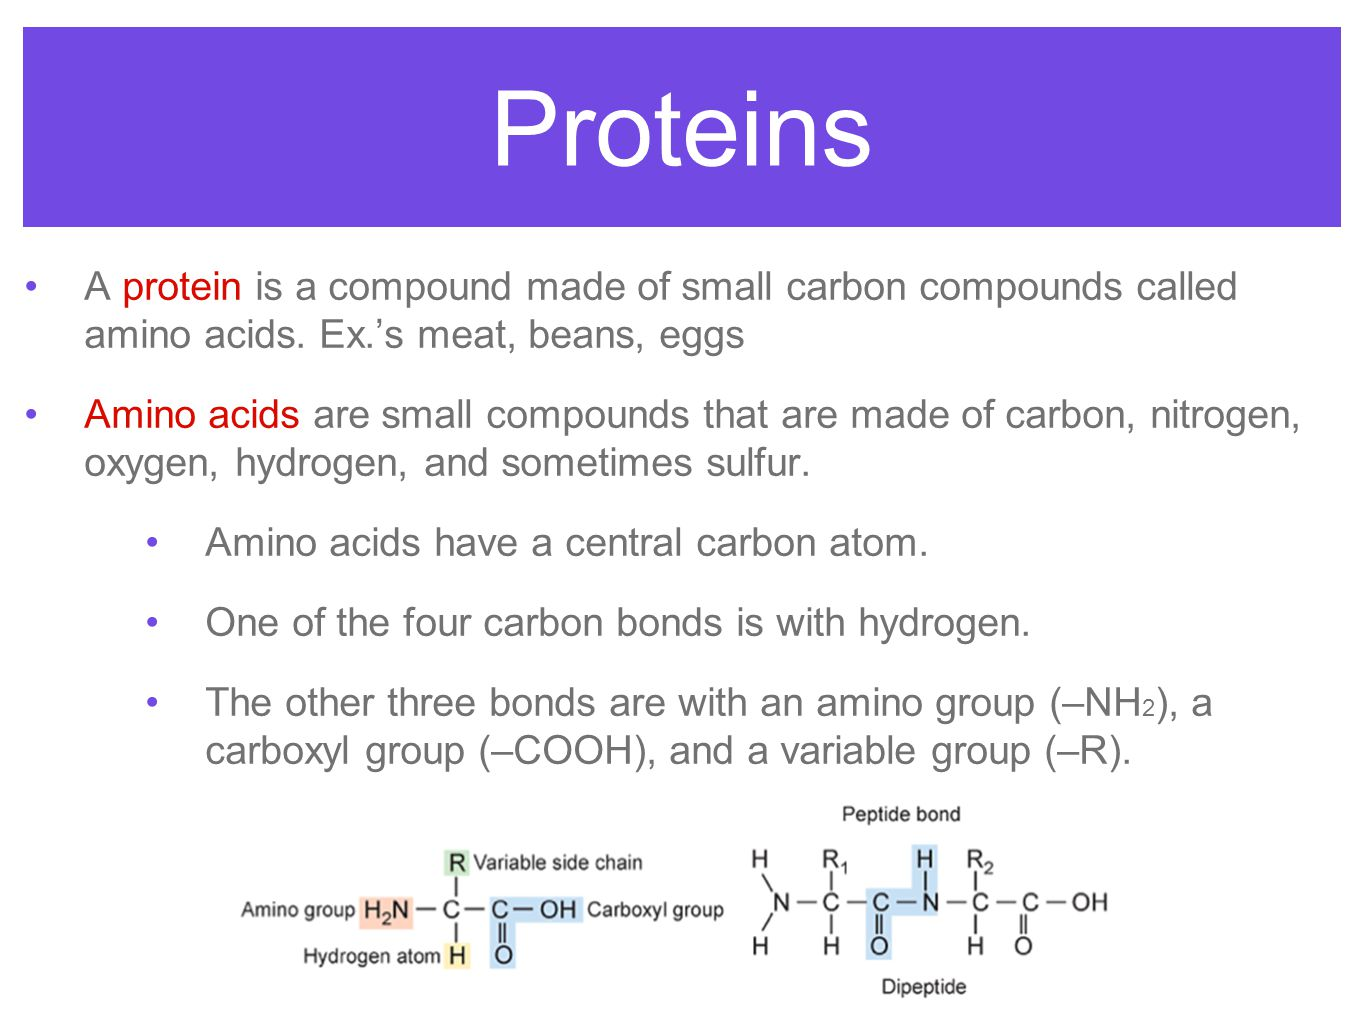 Proteins A protein is a compound made of small carbon compounds called amino acids. Ex.'s meat, beans, eggs.